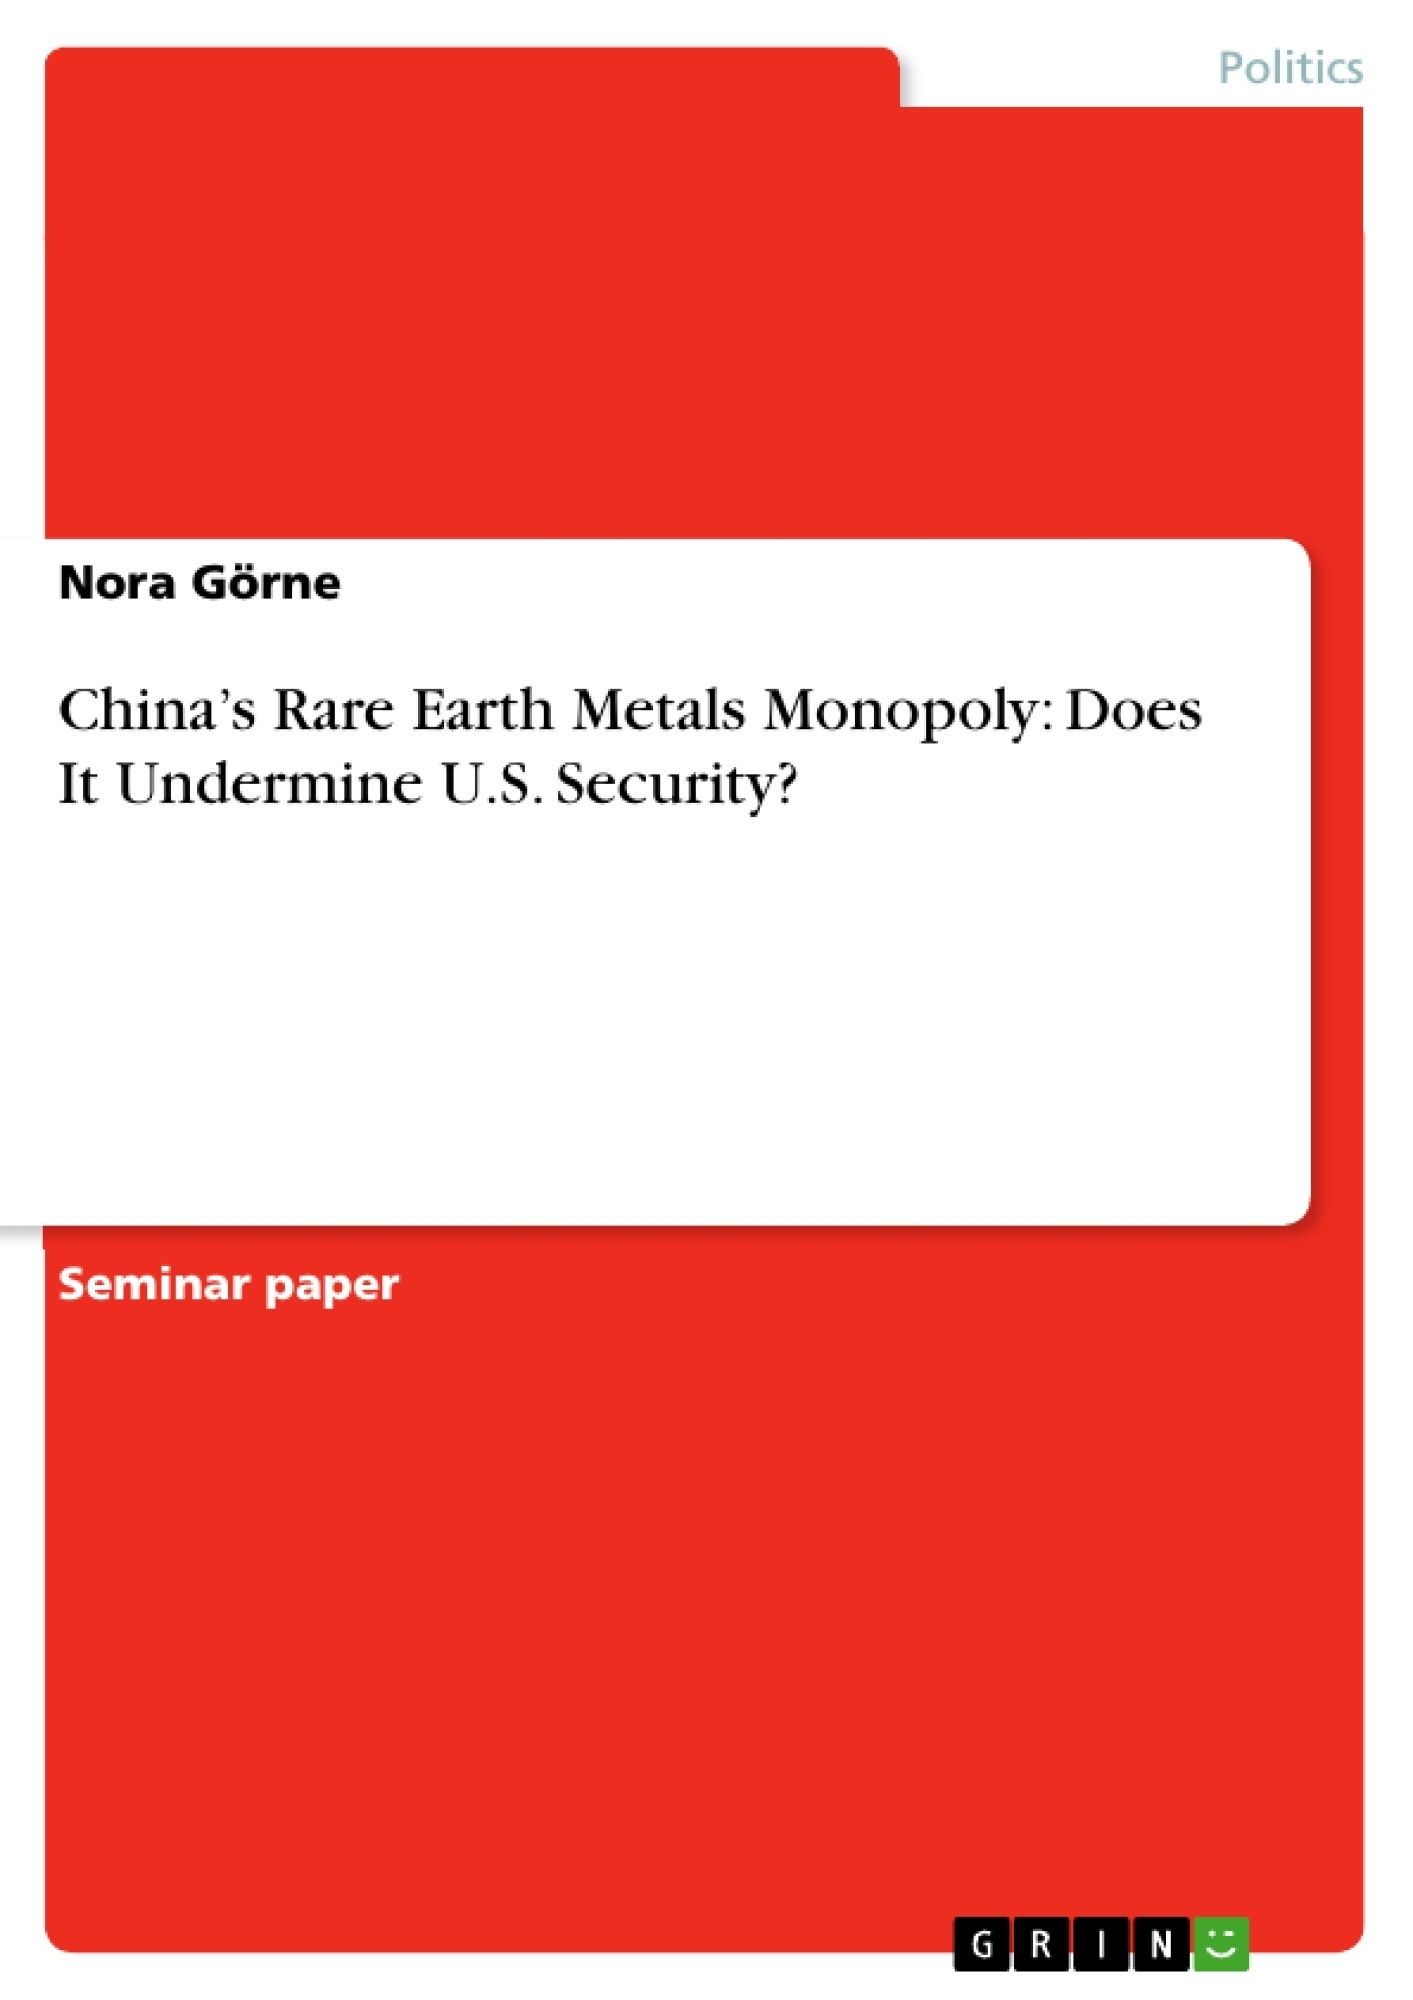 Title: China's Rare Earth Metals Monopoly: Does It Undermine U.S. Security?